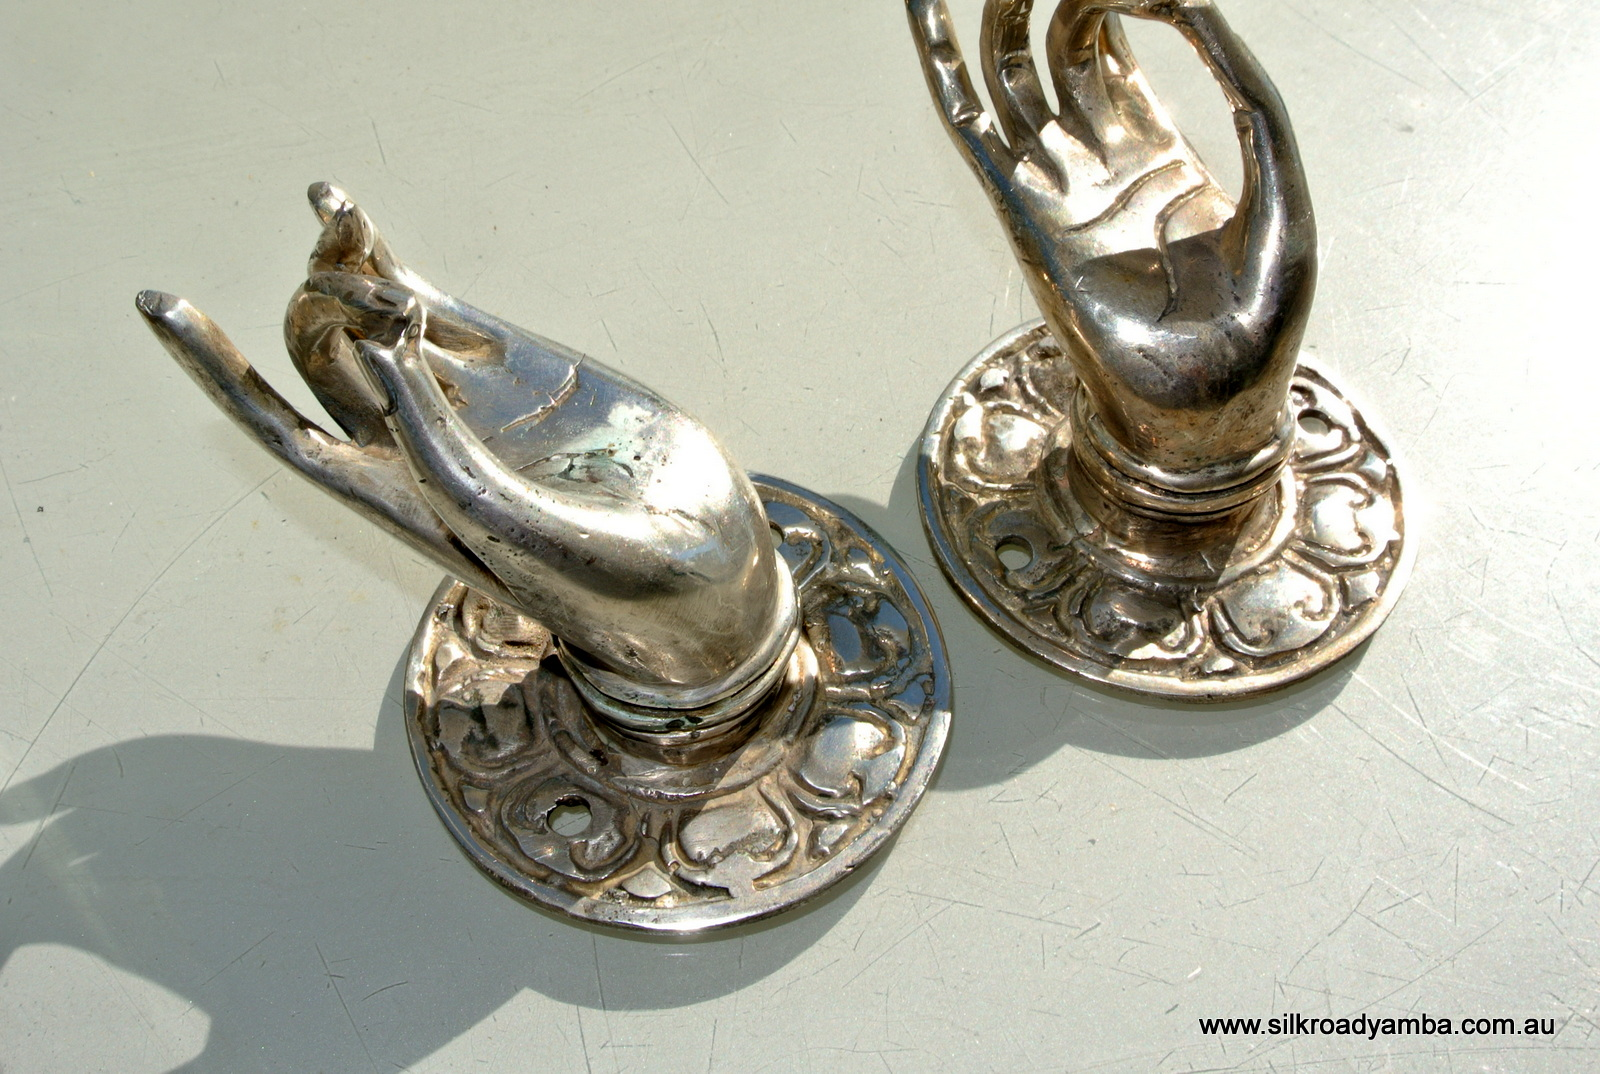 4 Small Old Looking Buddha Pulls Handle Fingers Silver